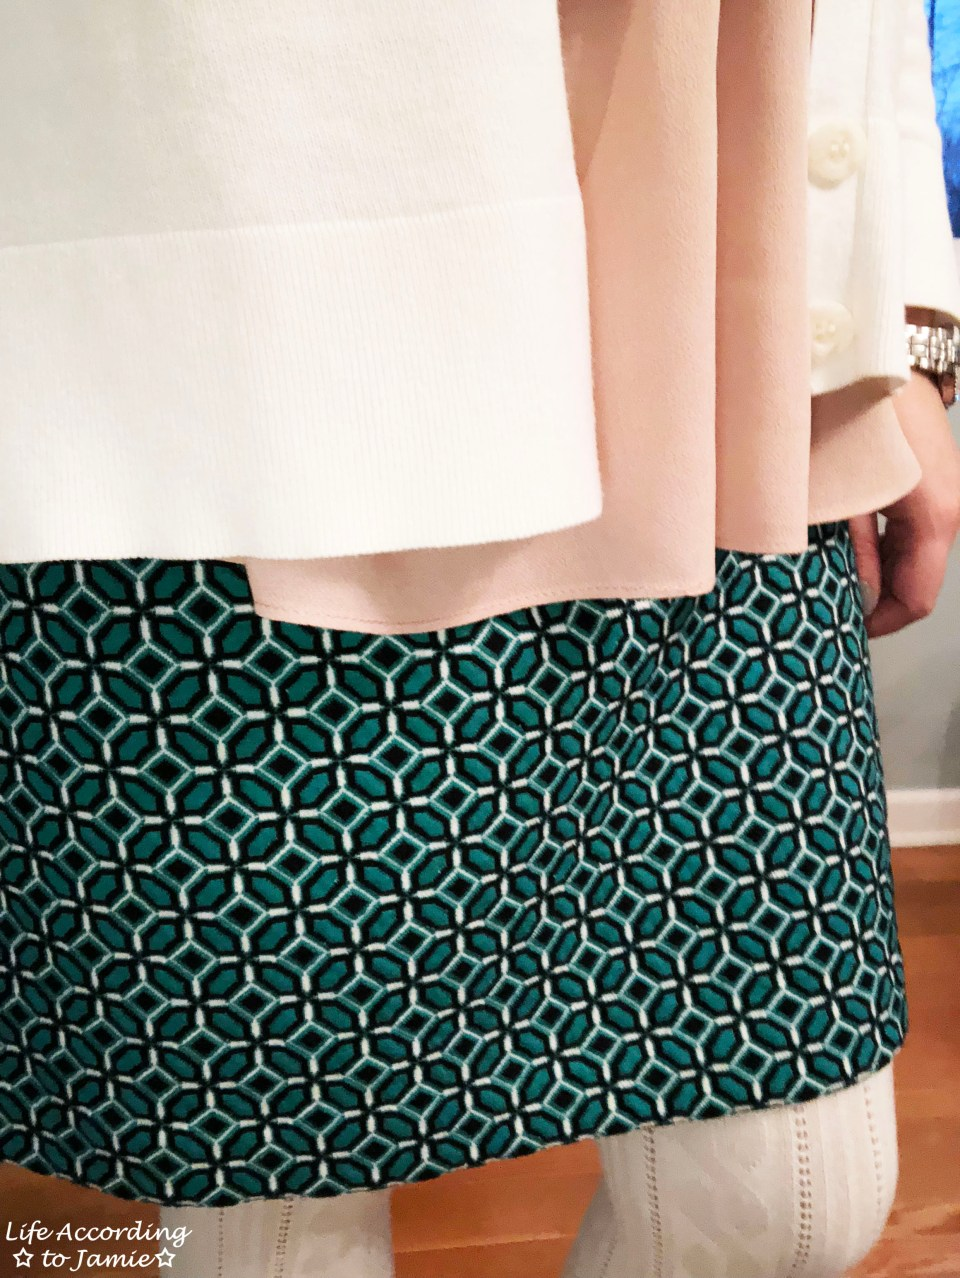 Tiled Jacquard Skirt 2